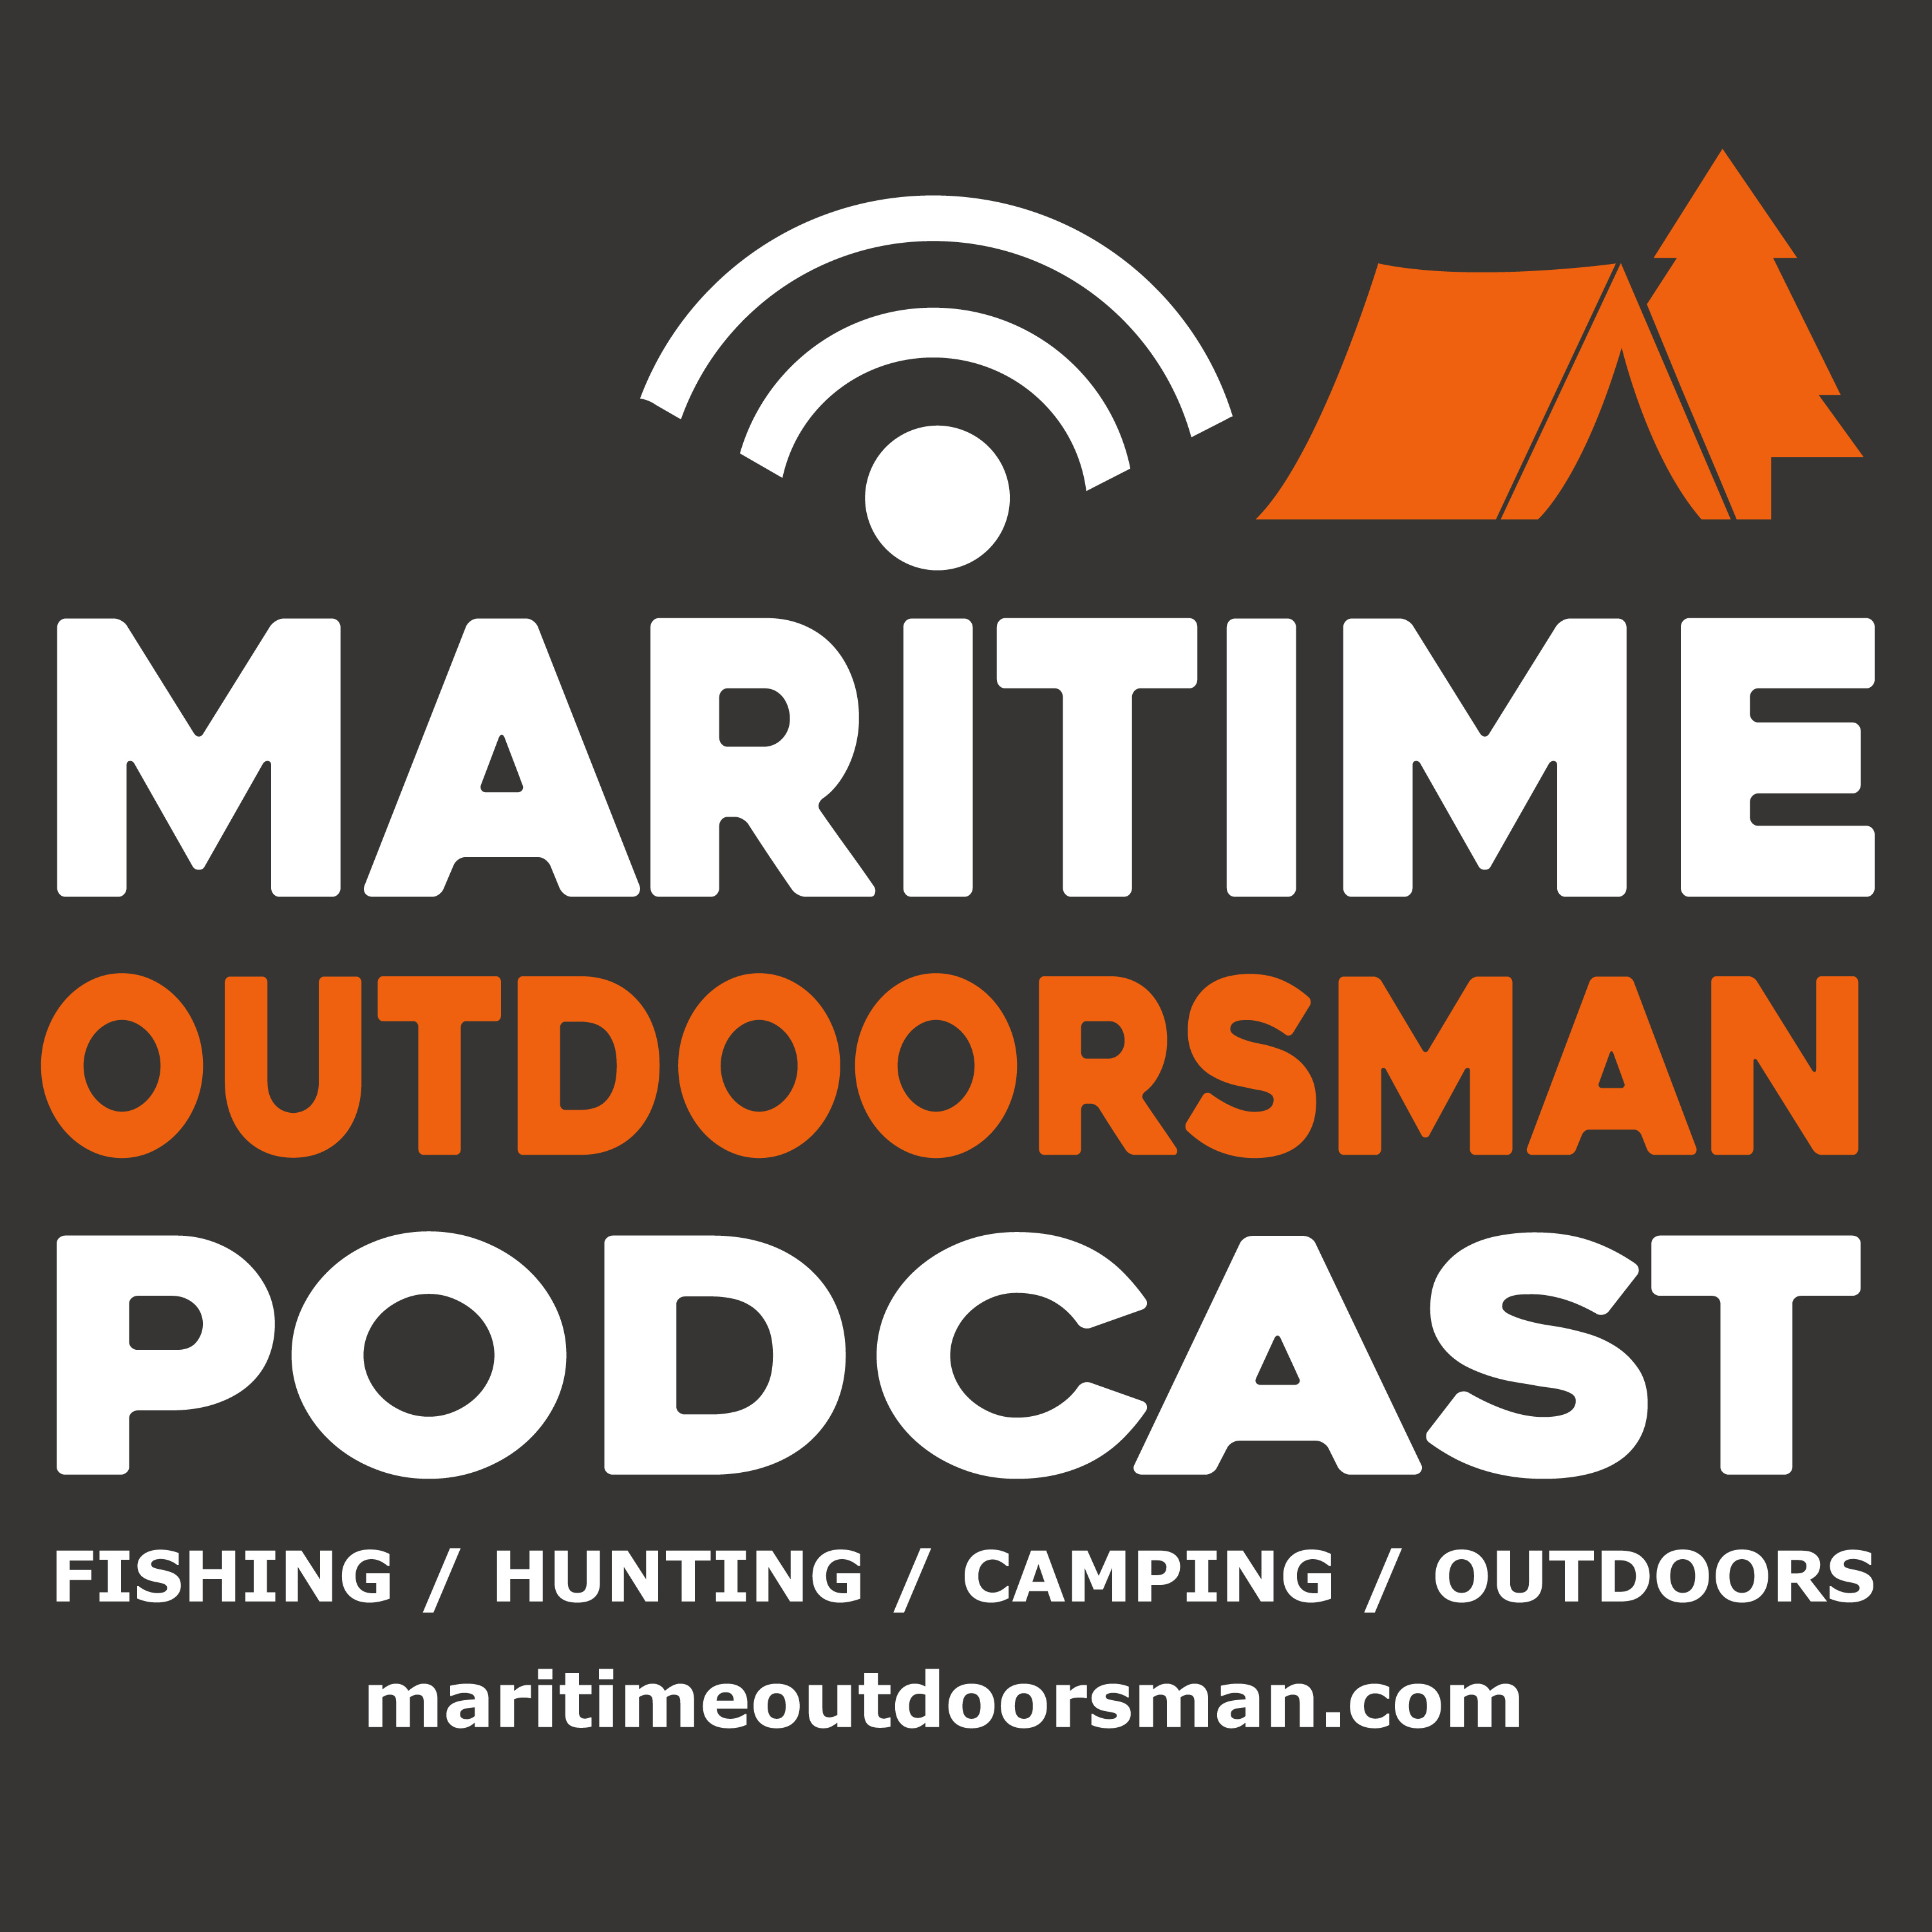 Maritime Outdoorsman - Podcast for Maritime outdoor enthusiasts